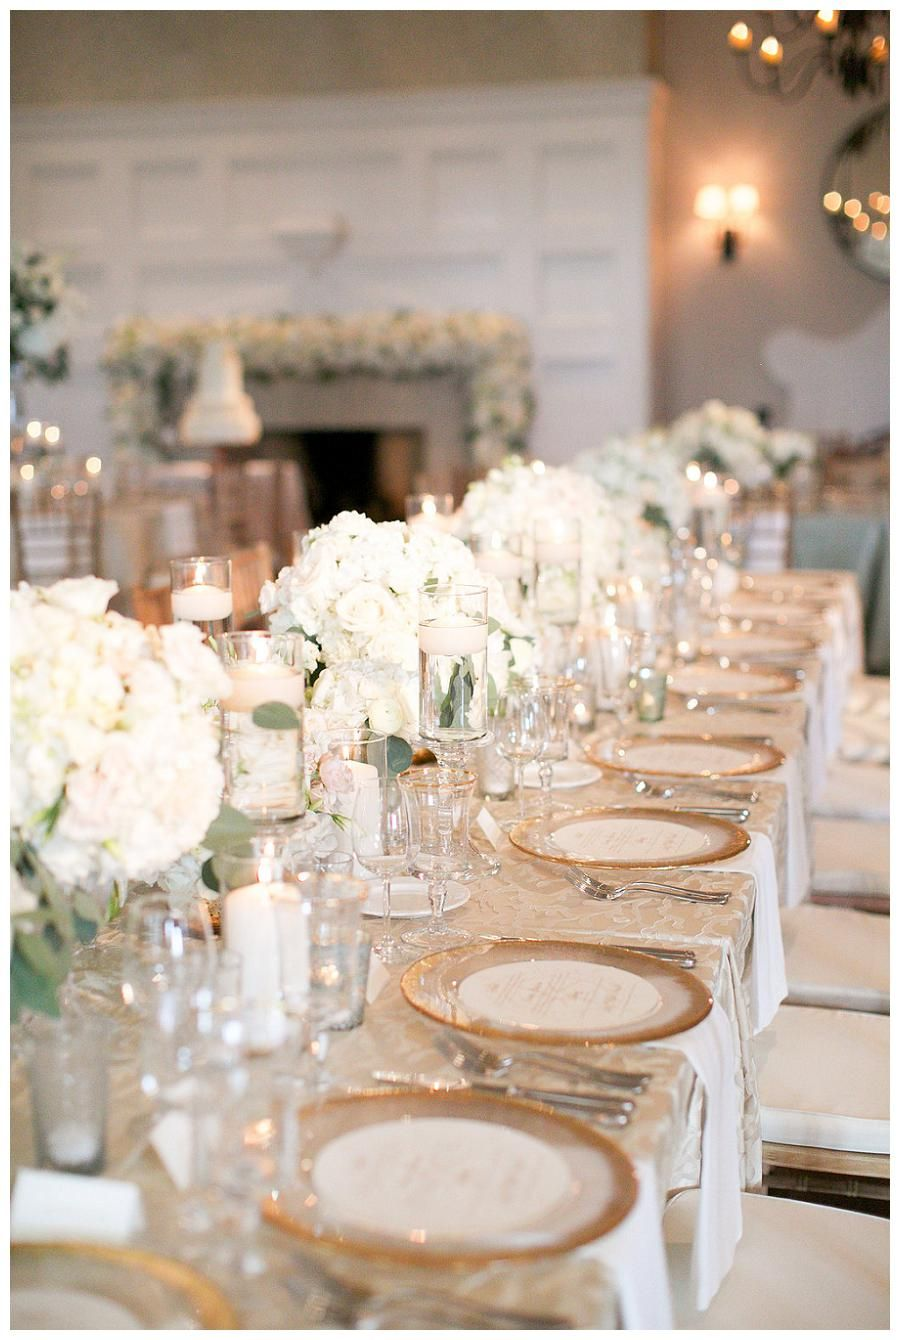 Gold, ivory and white wedding reception tabletop with white centerpiece florals…